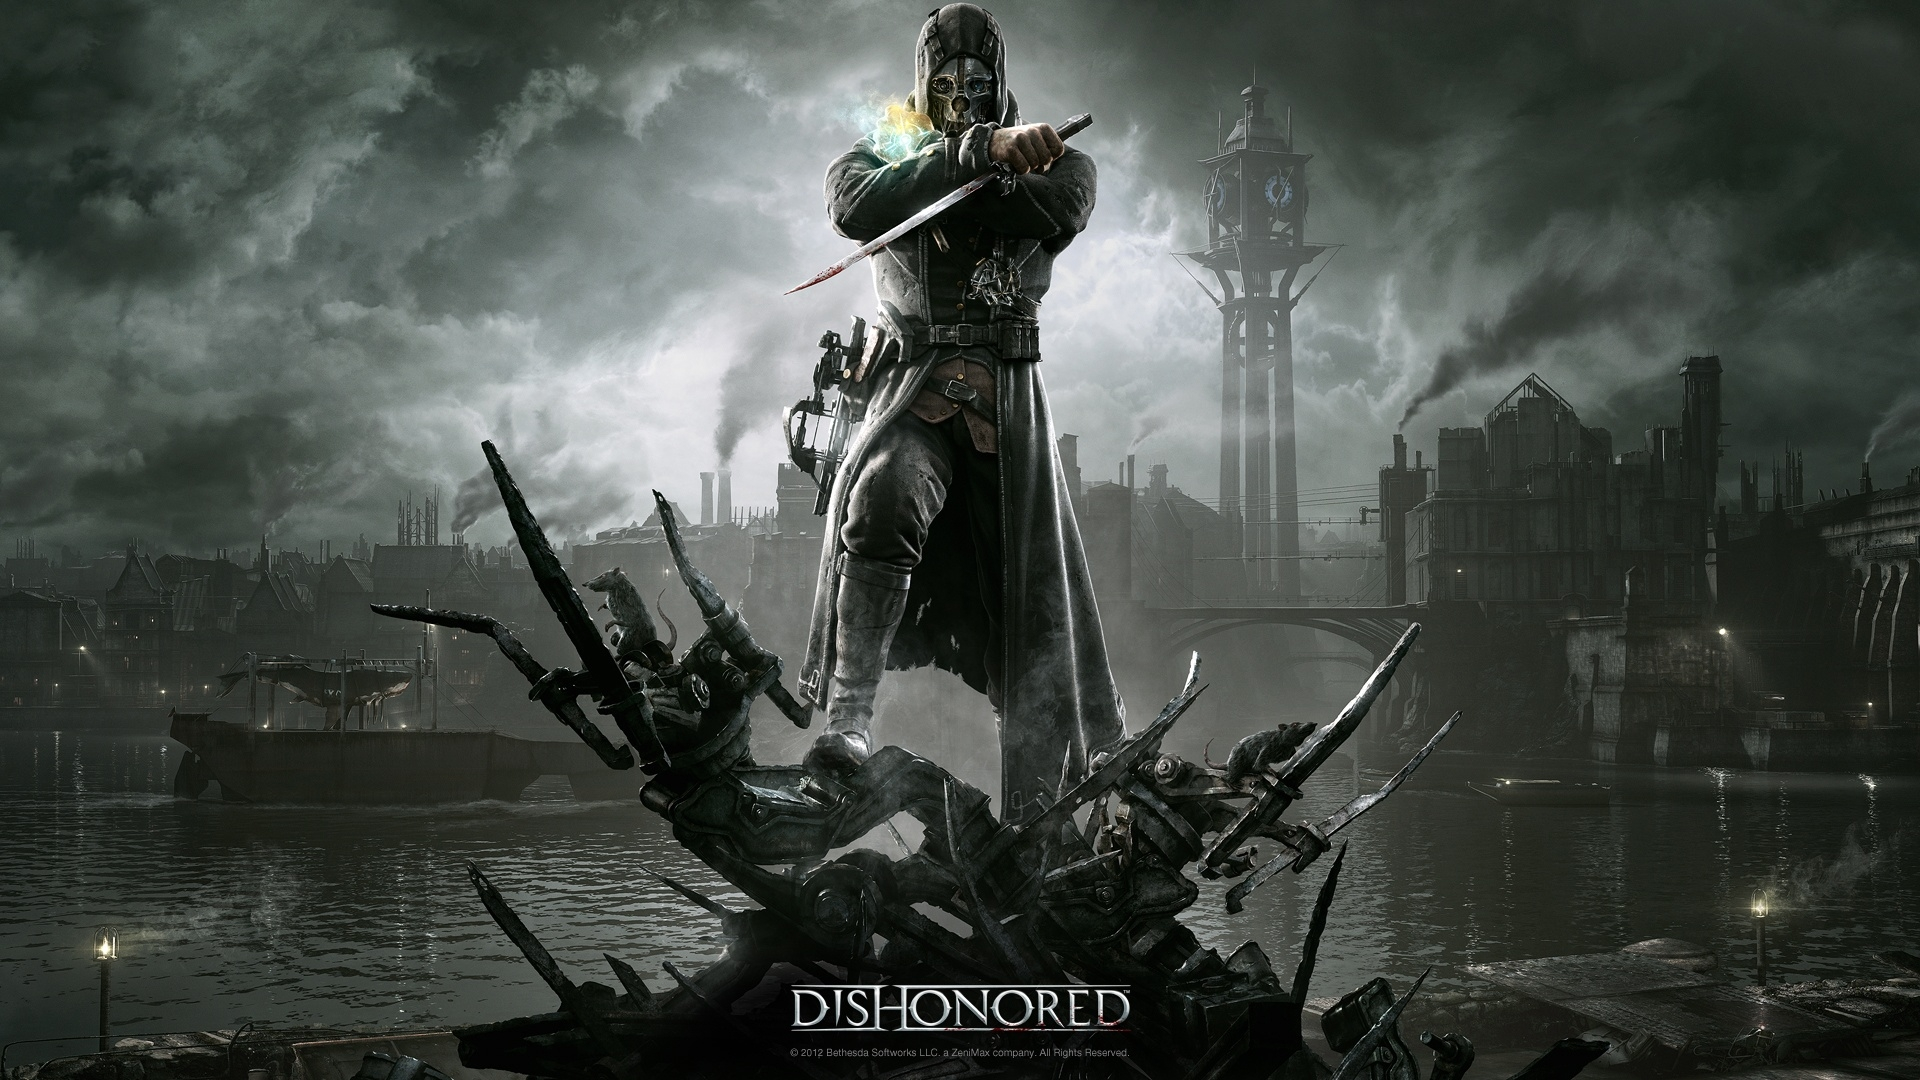 dishonored feat